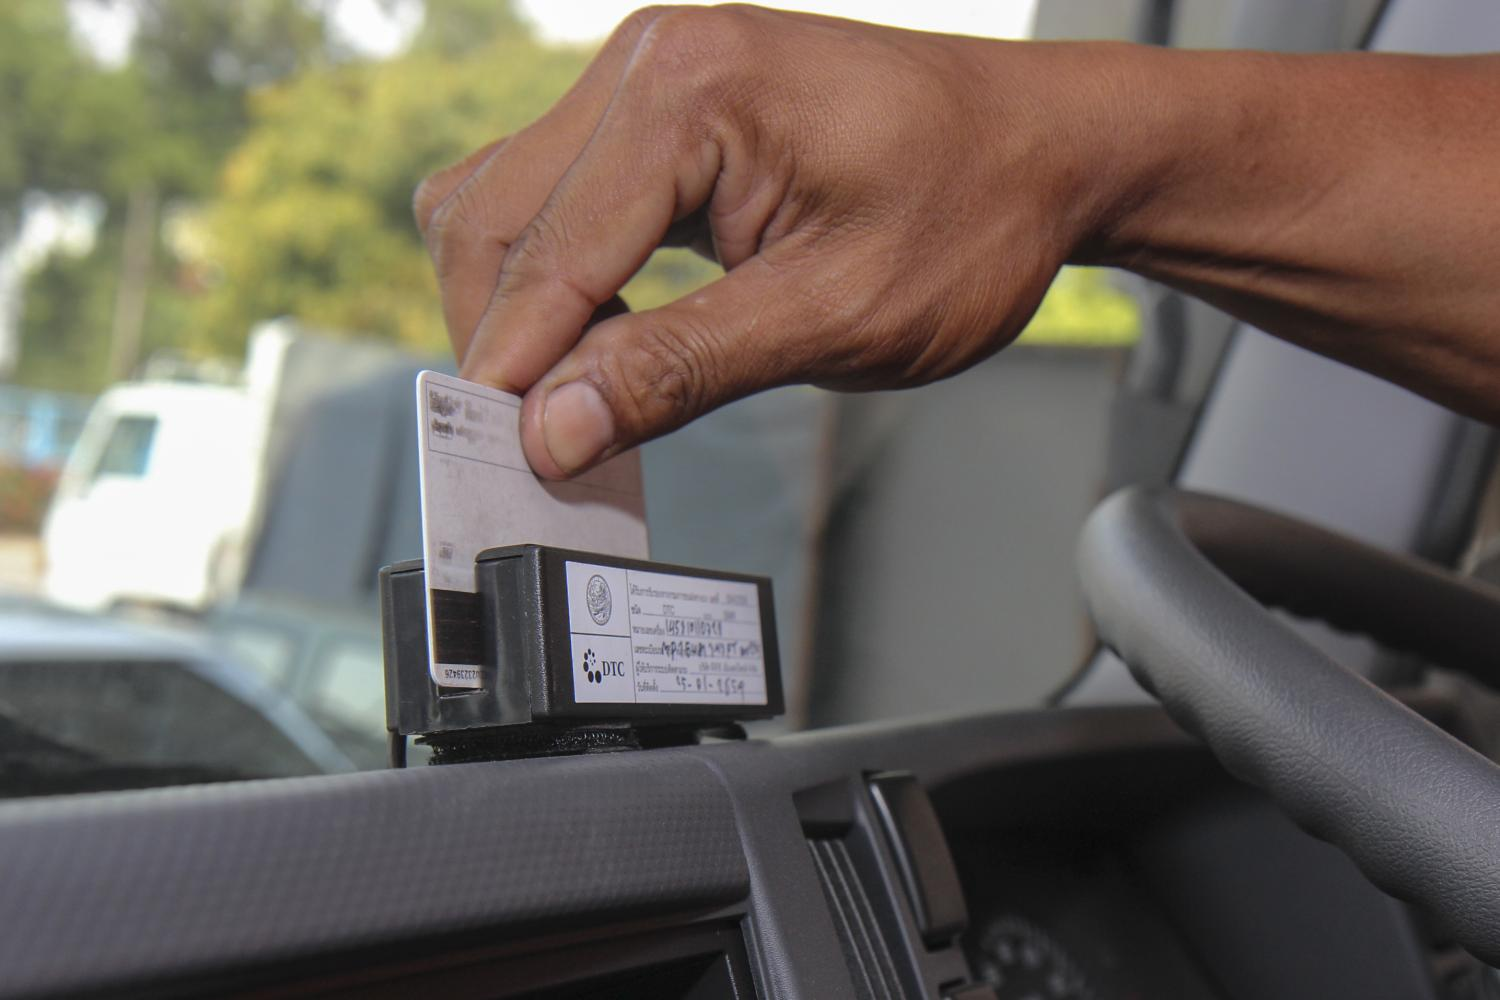 A driver of a public vehicle is required to swipe a card through a GPS-linked reader, to self-verify his identify before driving.